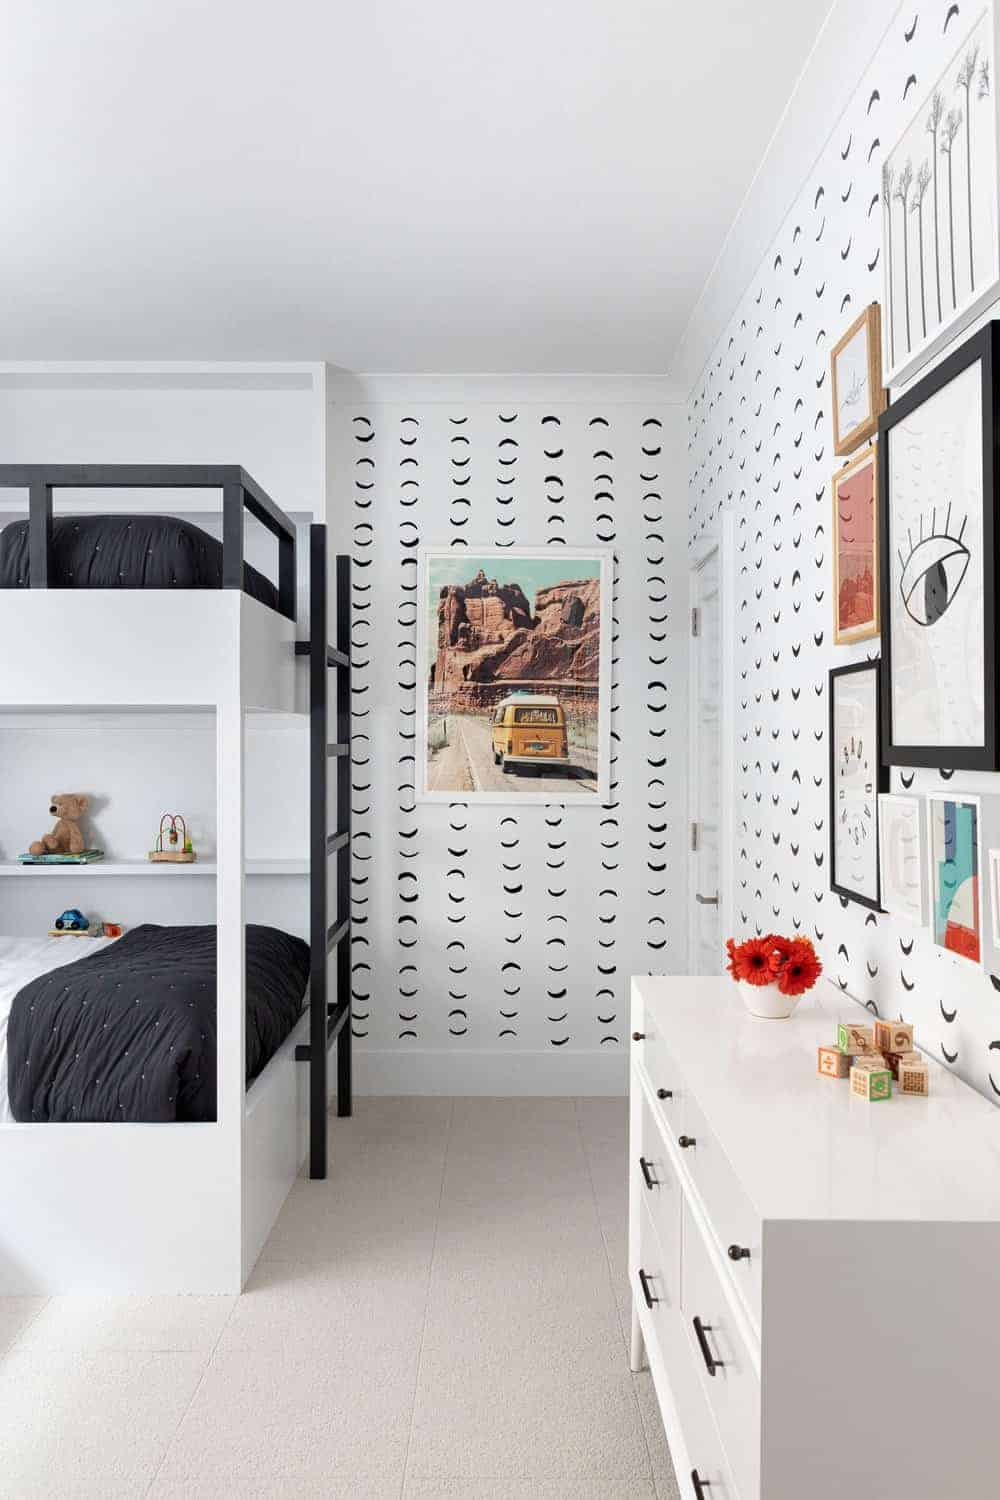 This kids' bedroom features stylish black and white bunk beds and attractive wall design as well.